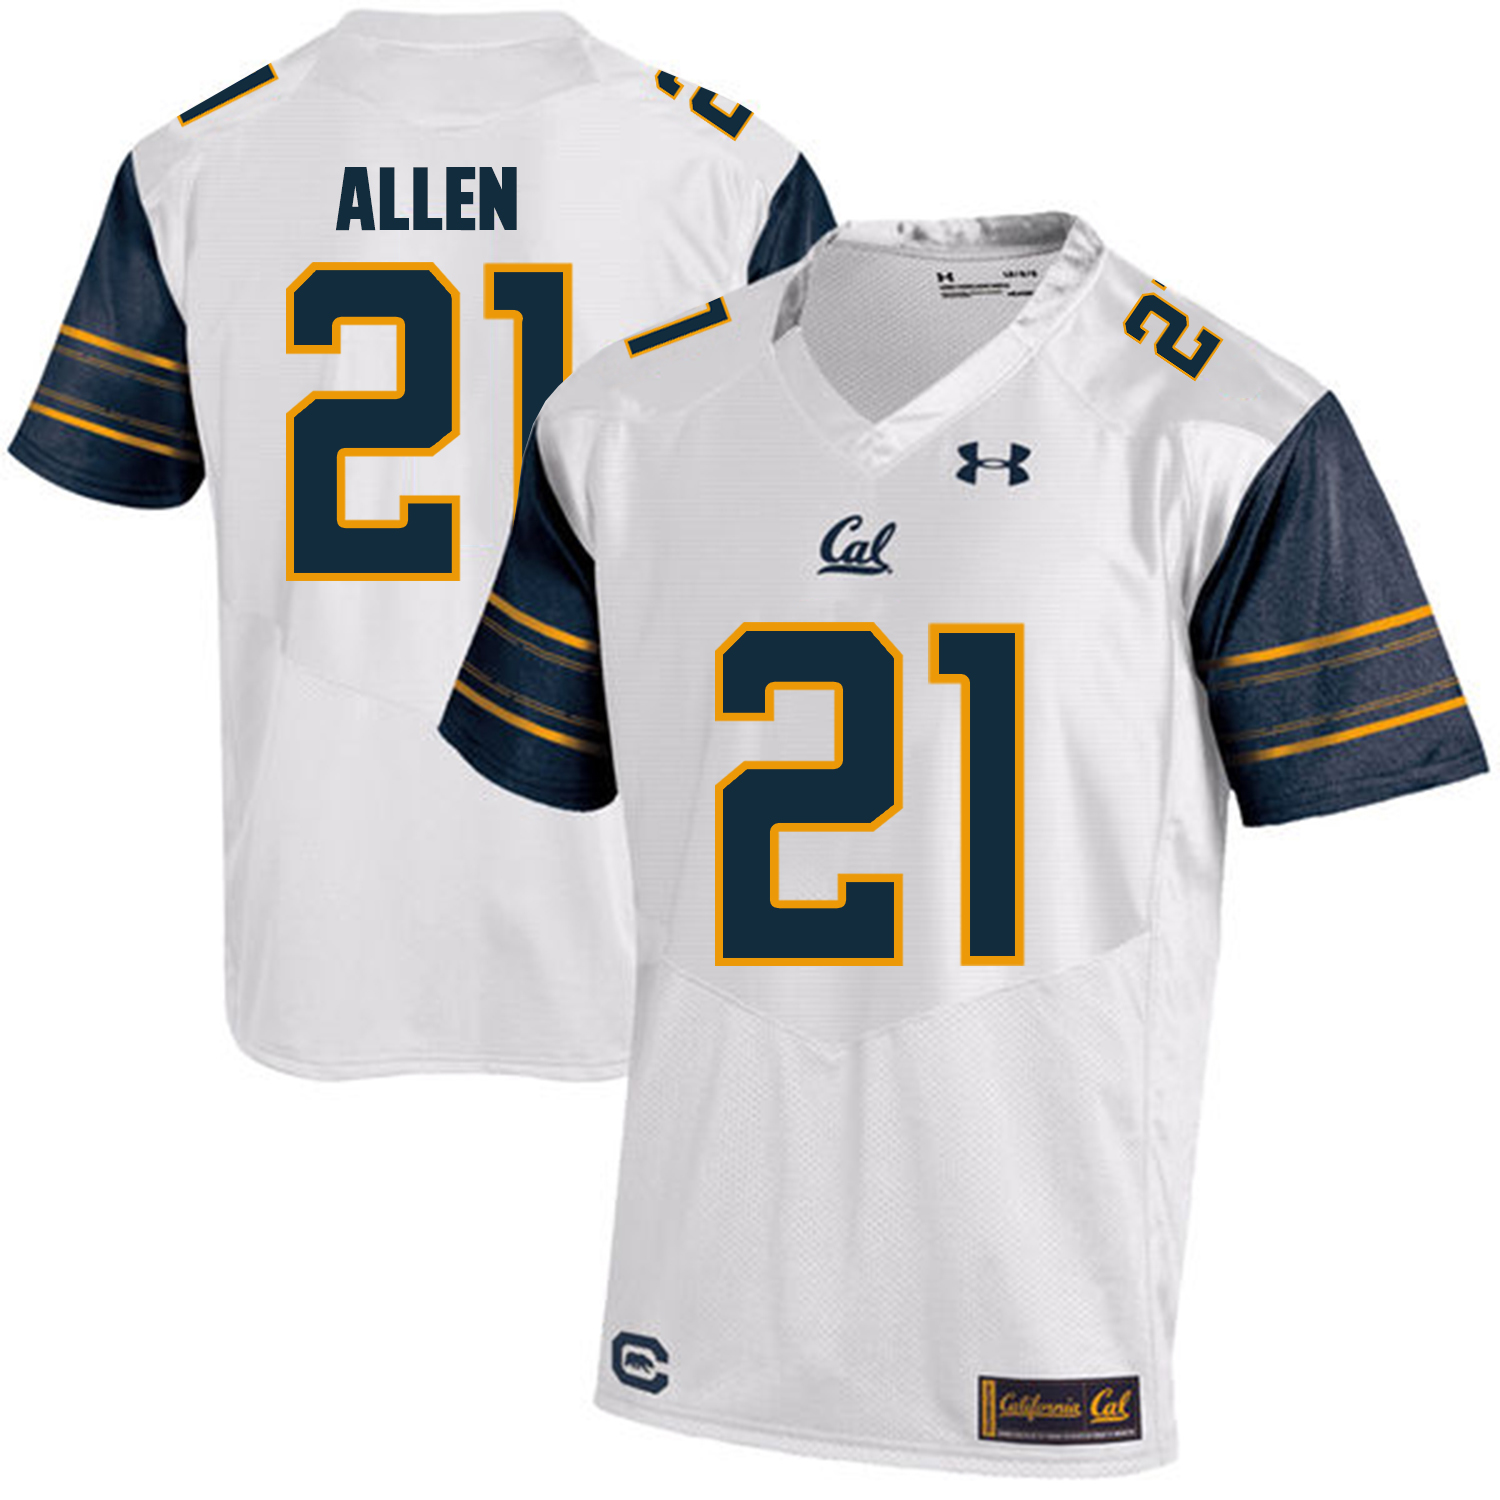 California Golden Bears 21 Keenan Allen White College Football Jersey